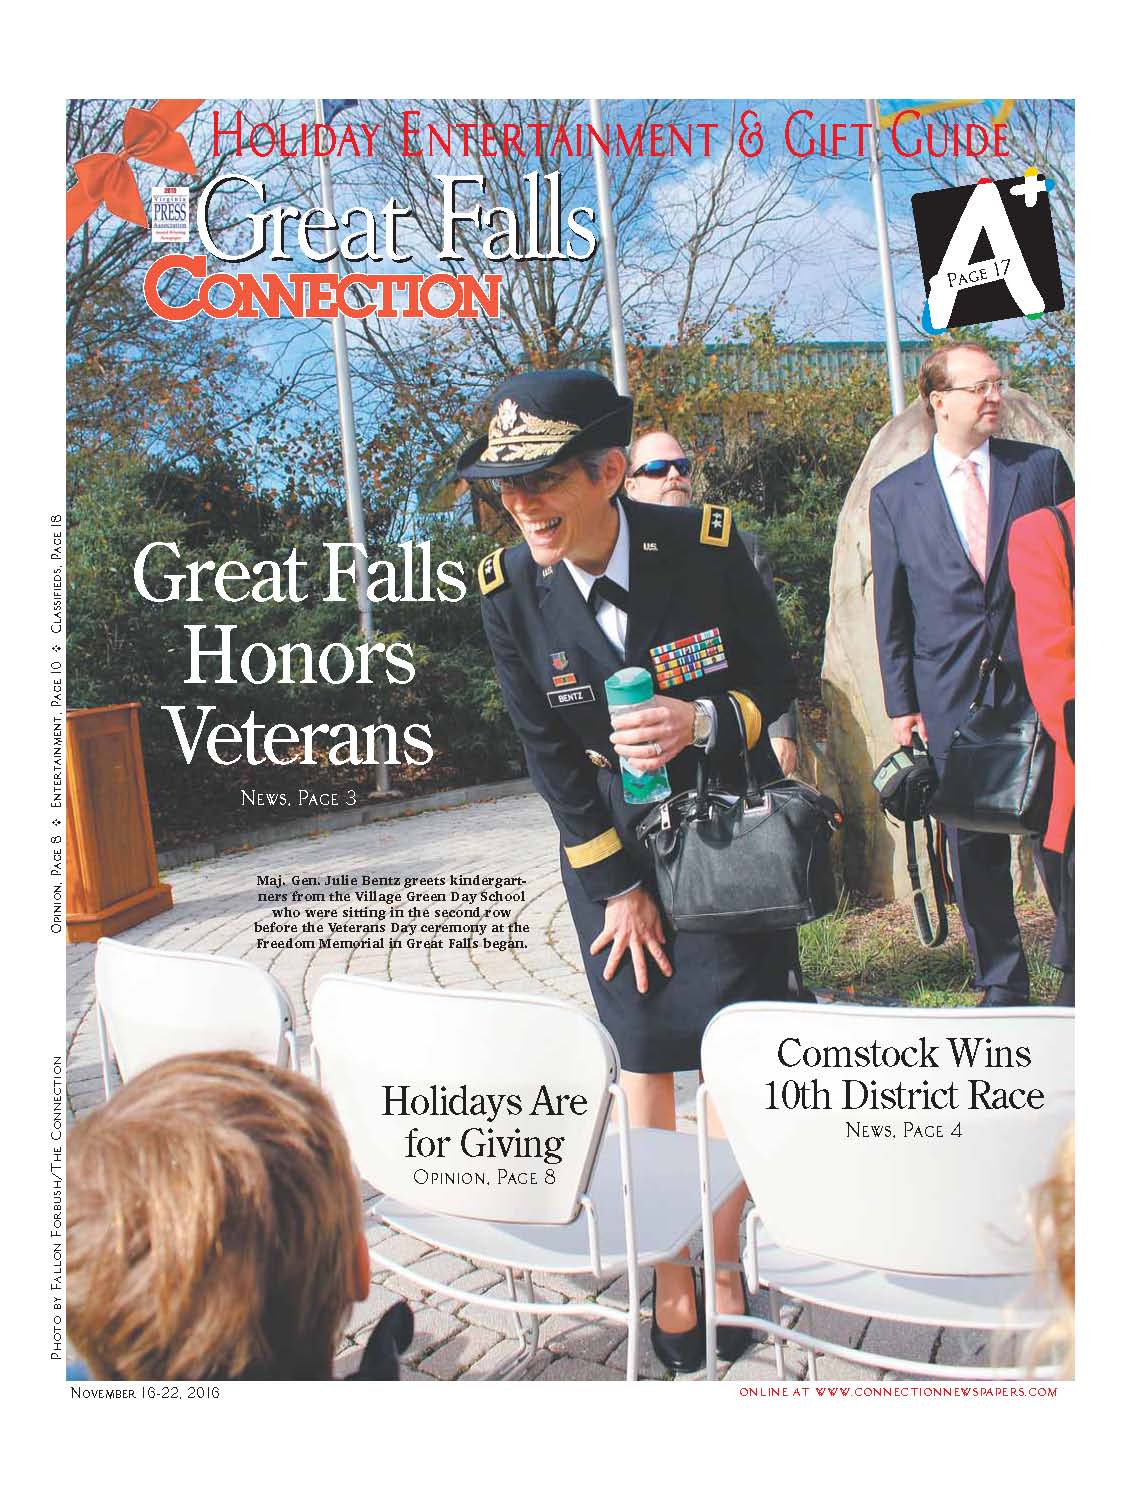 Great Falls Connection, November 16, 2016